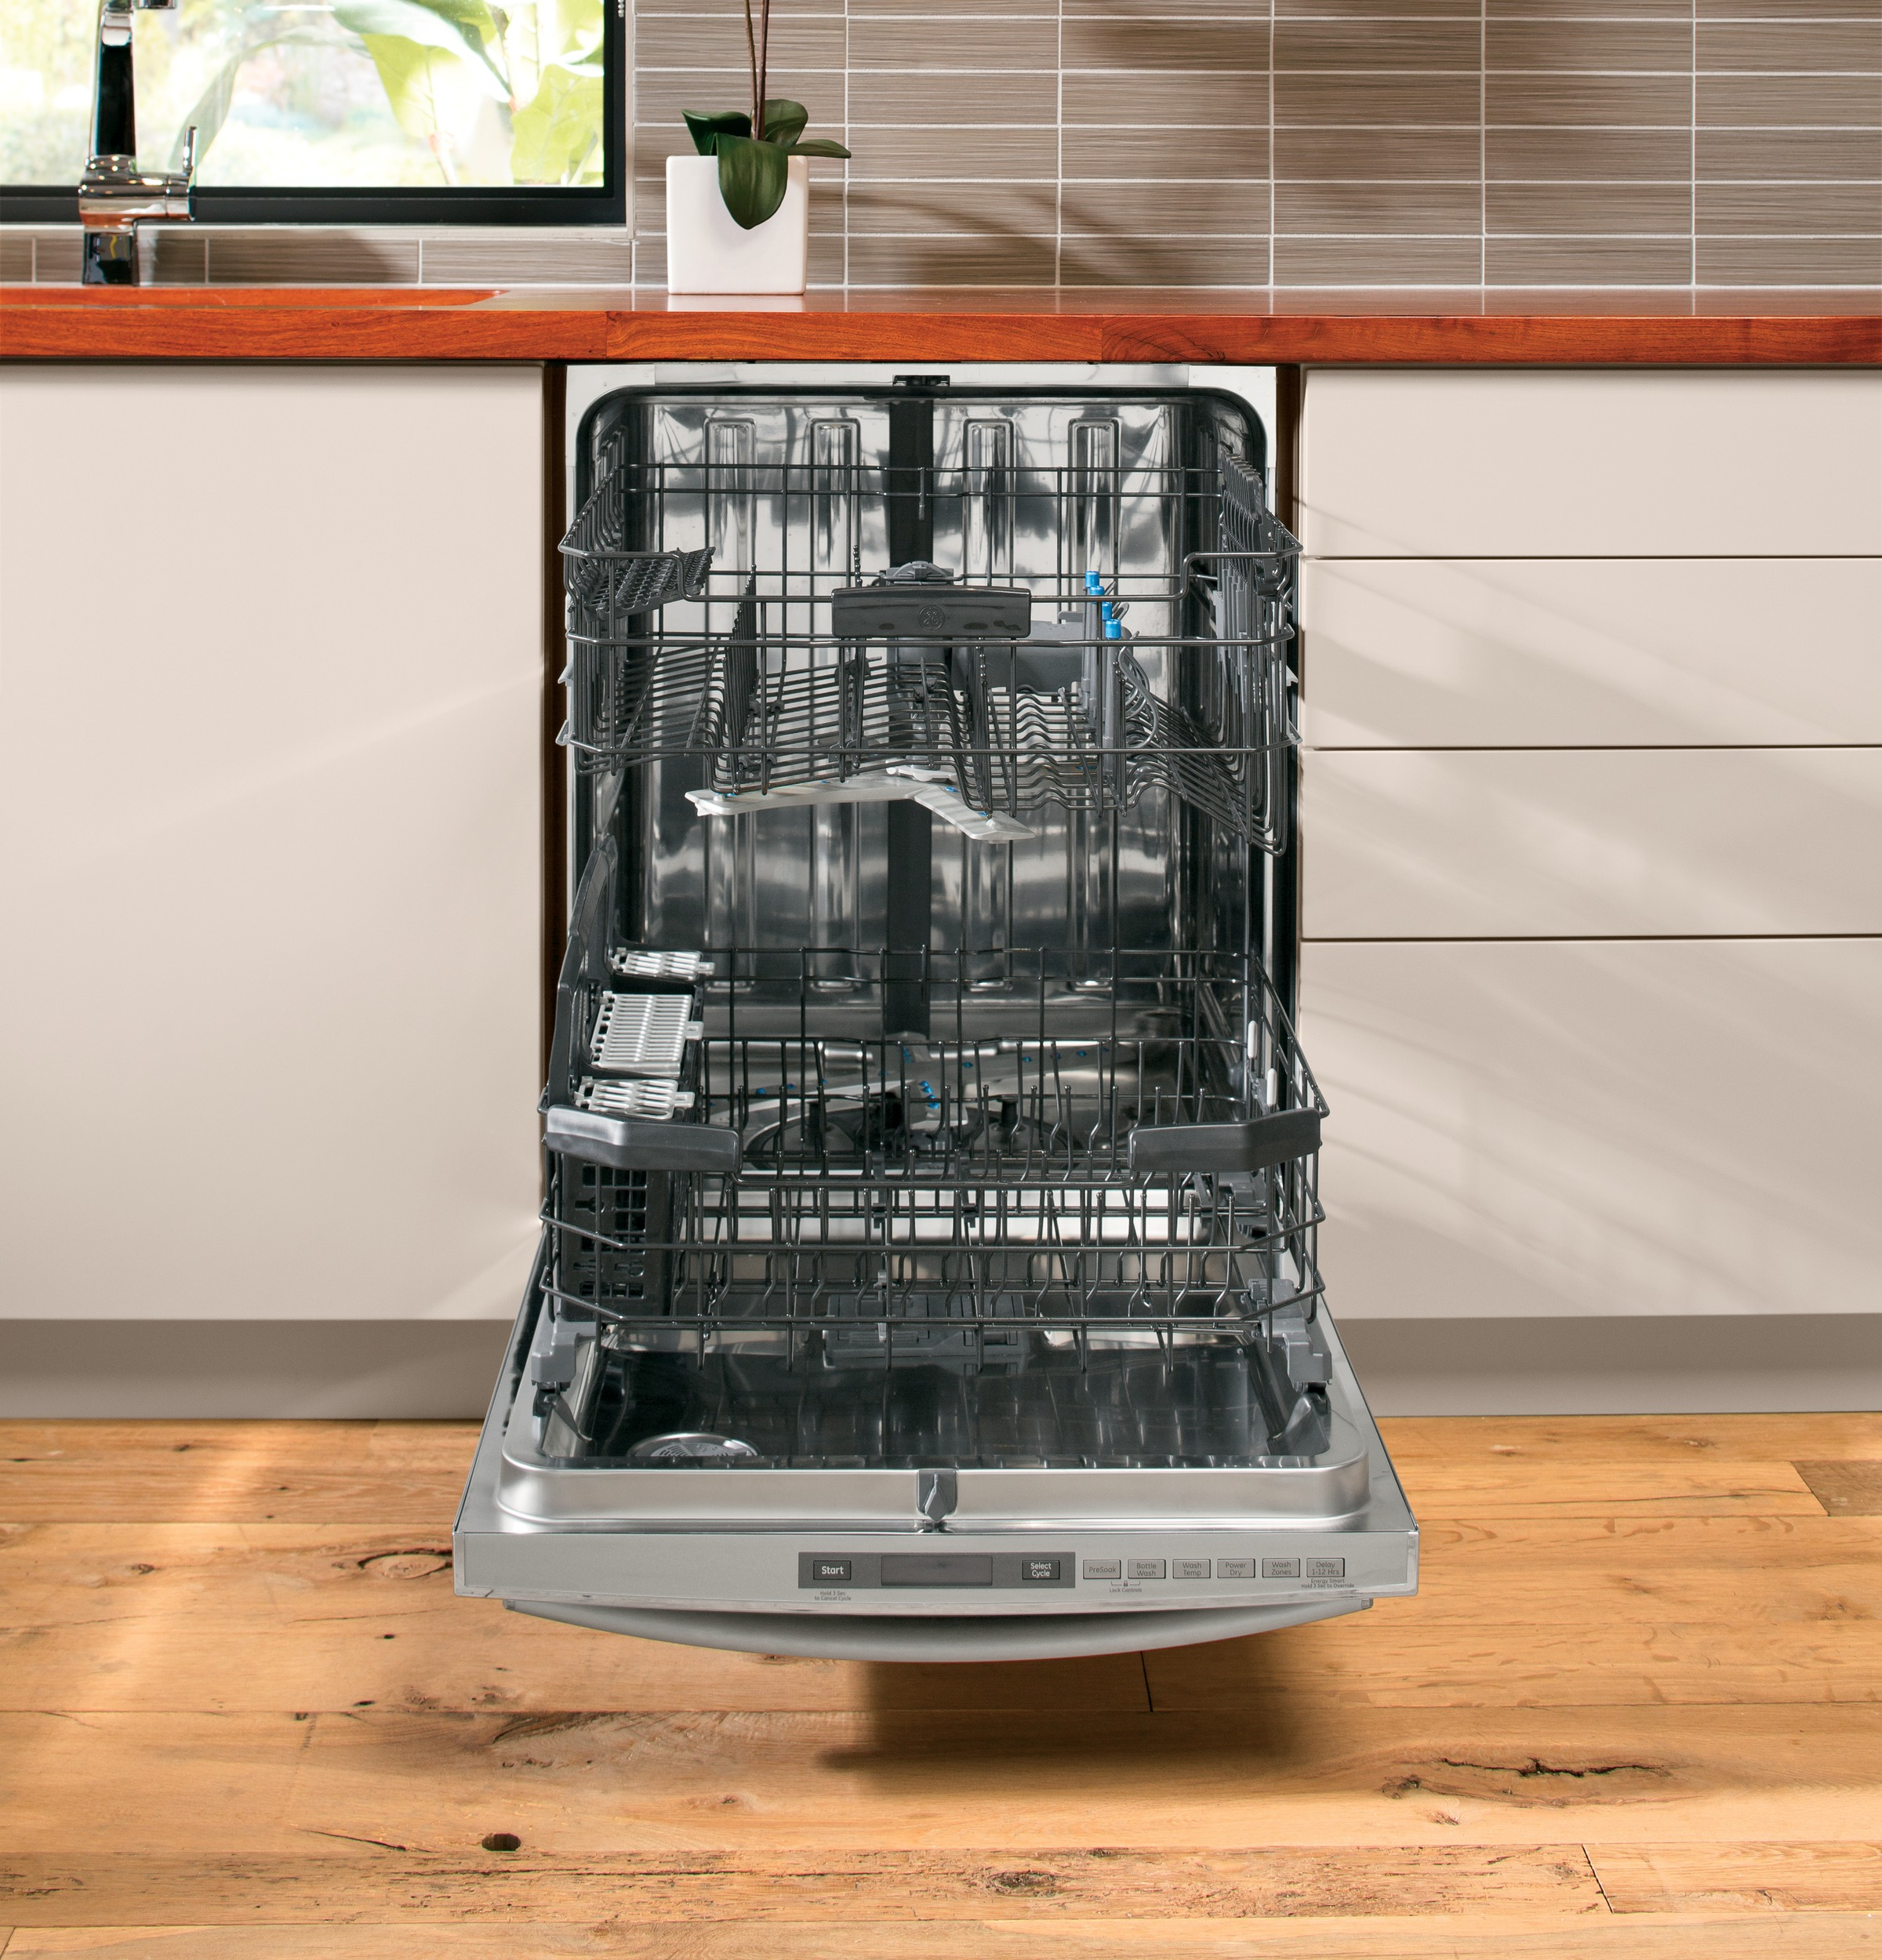 "GE Profile PDT750SSFSS 24"" Built-in Dishwasher w/ Stainless Steel Interior - Stainless Steel"